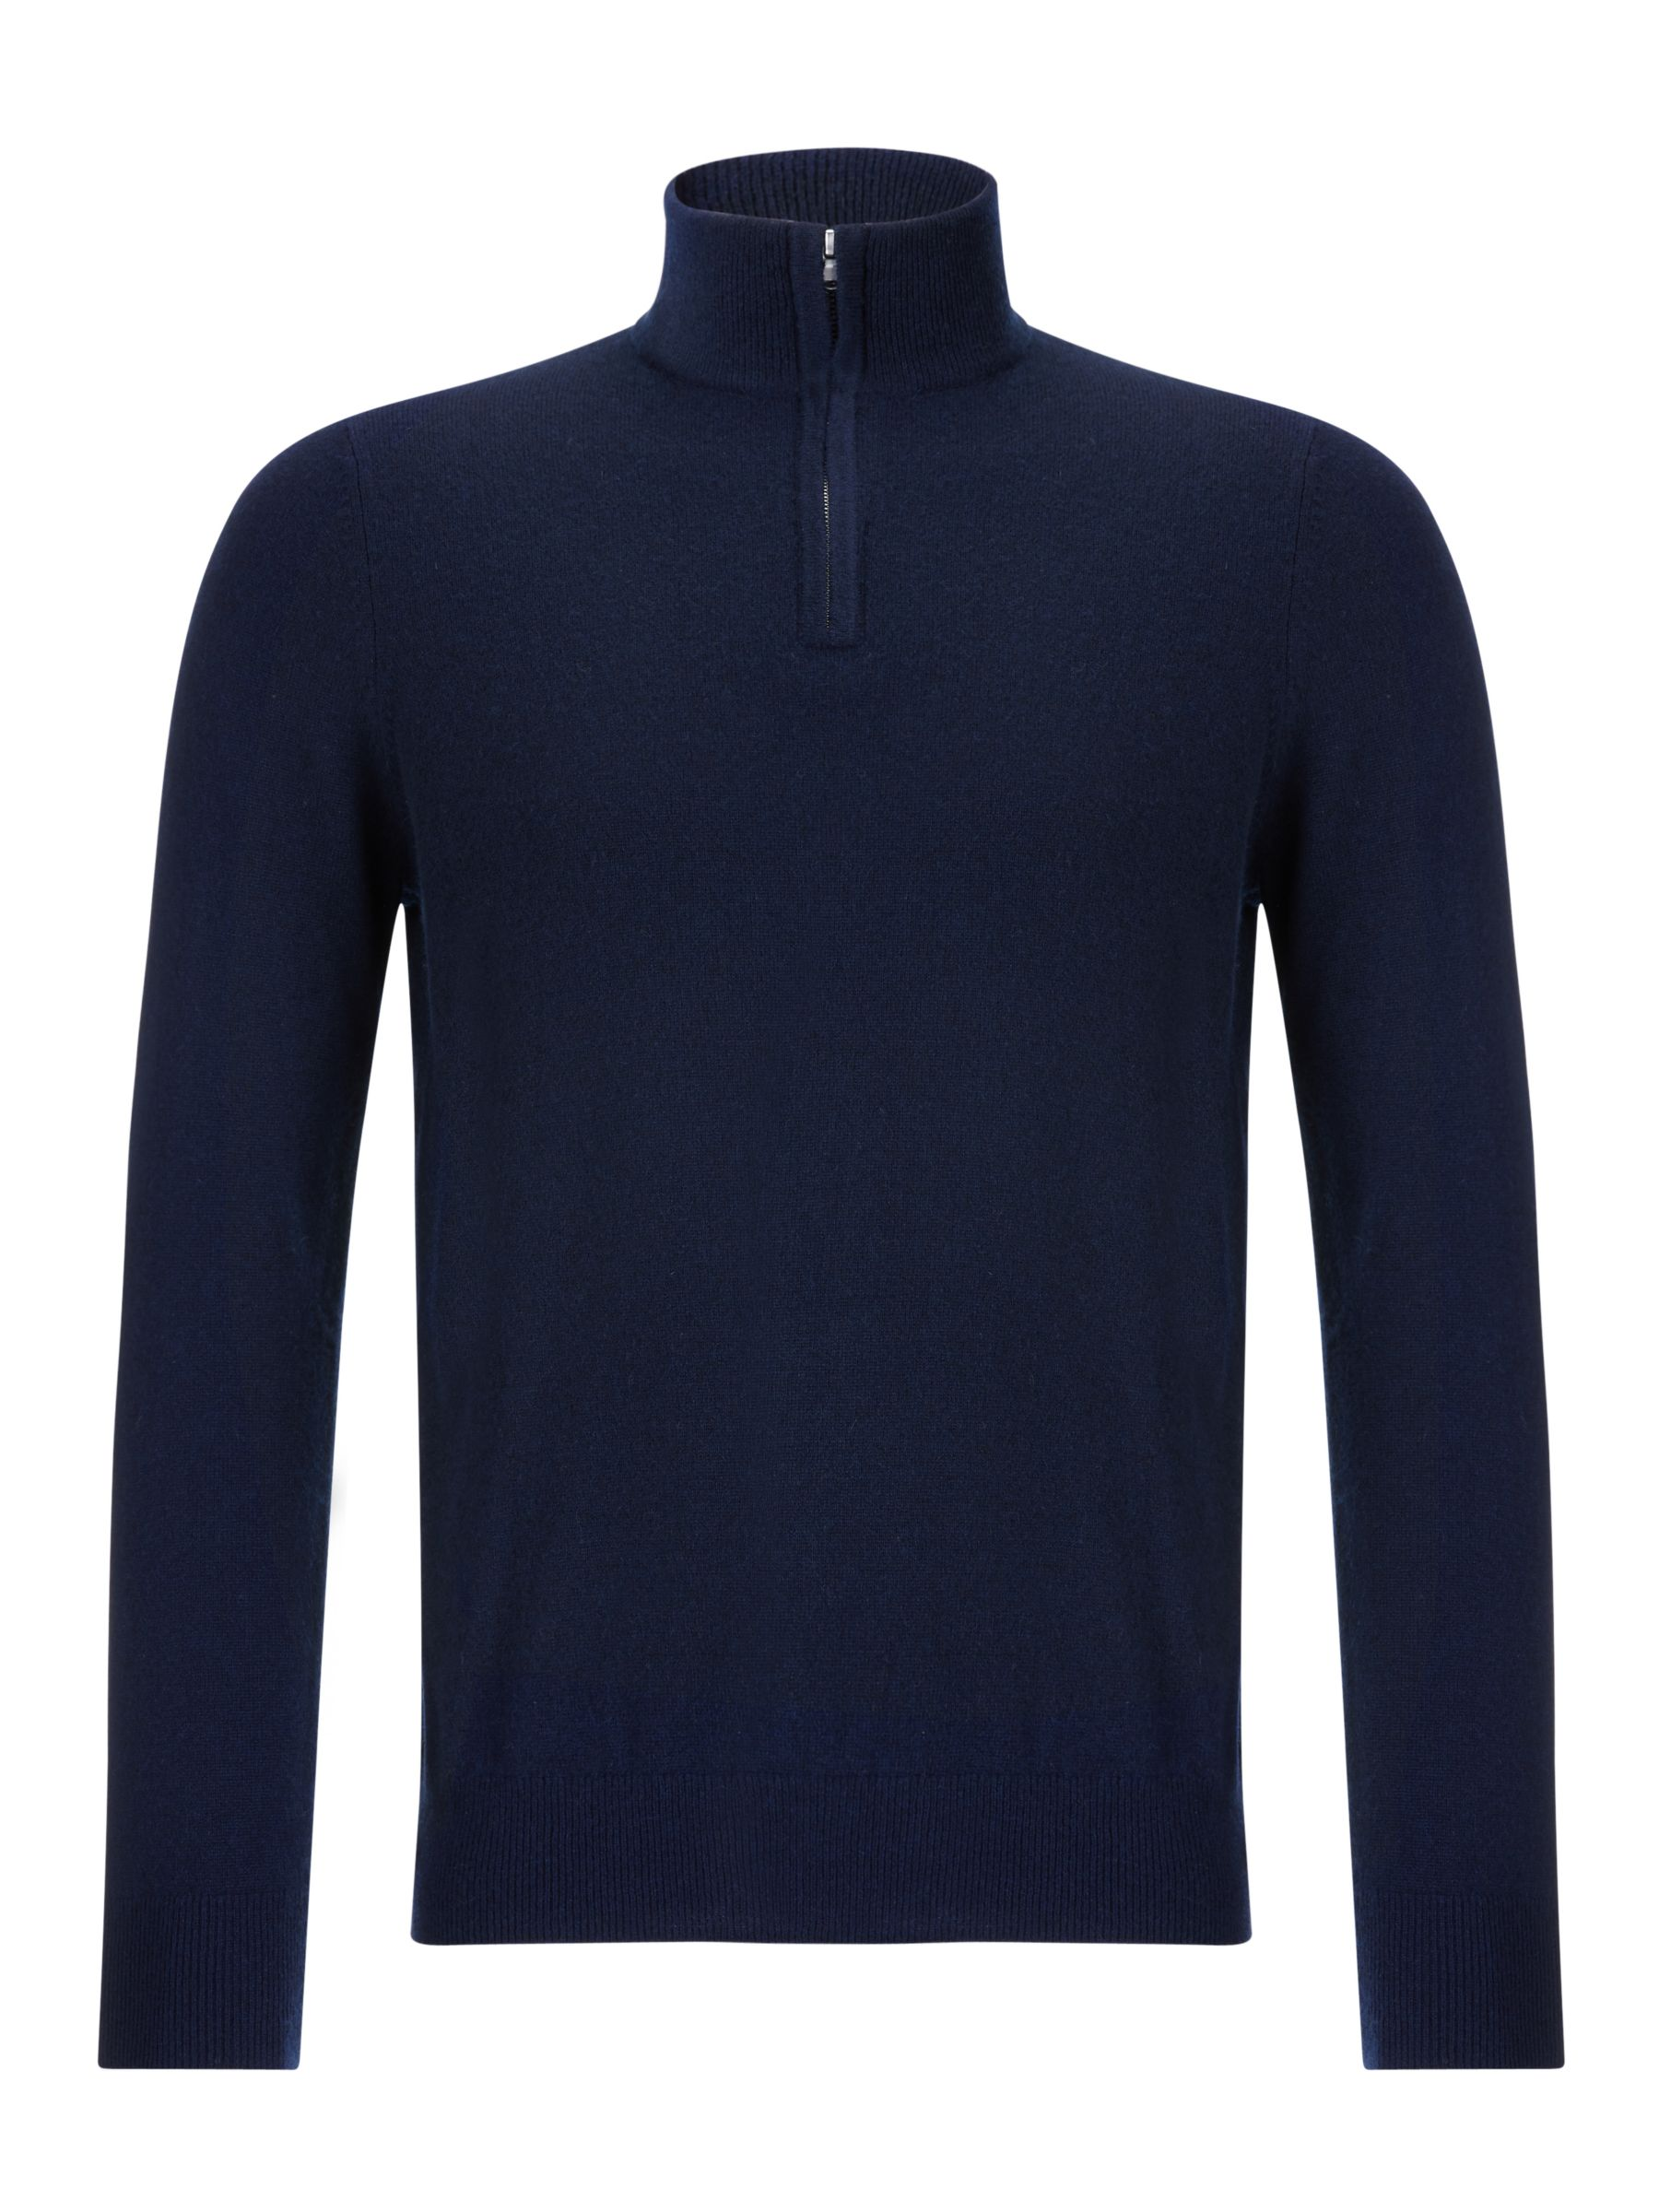 Buy John Lewis & Partners Cashmere Half Zip Jumper, Navy, S Online at johnlewis.com